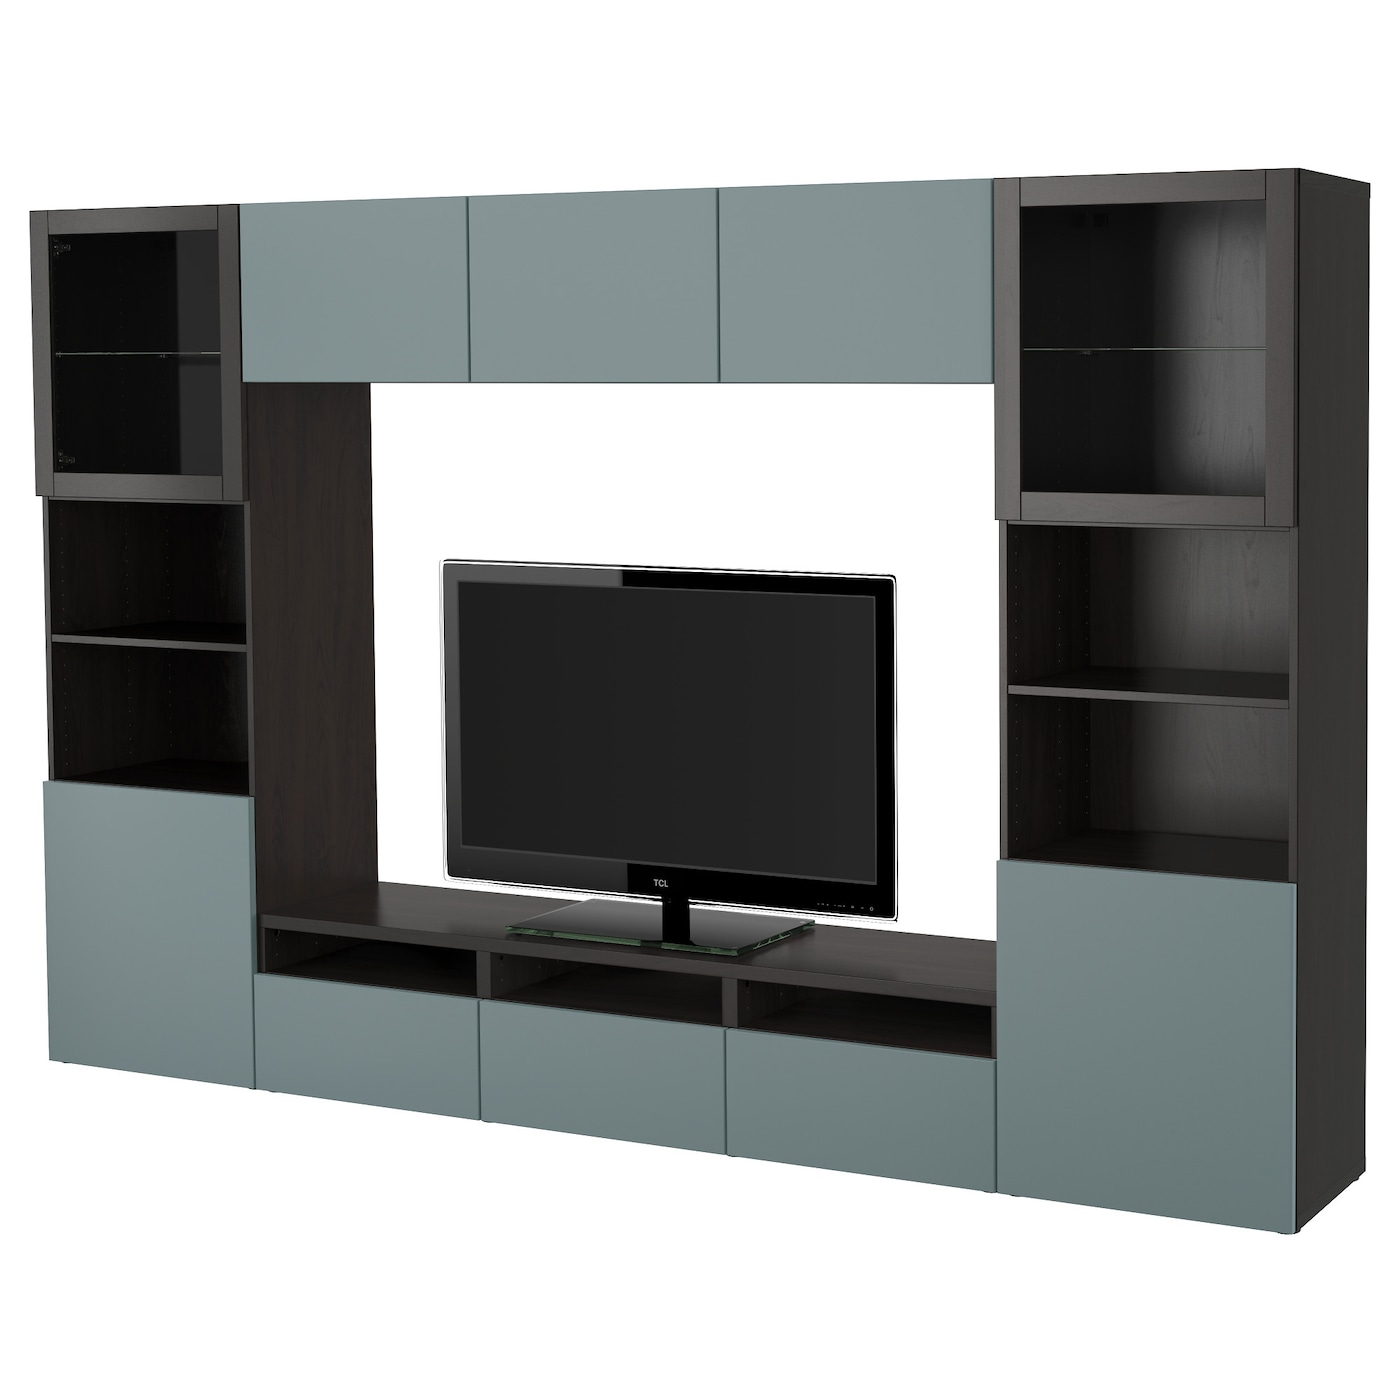 Tv Stands Media Units Ikea Ireland Dublin # Ikea Meuble Tv Besta Burs